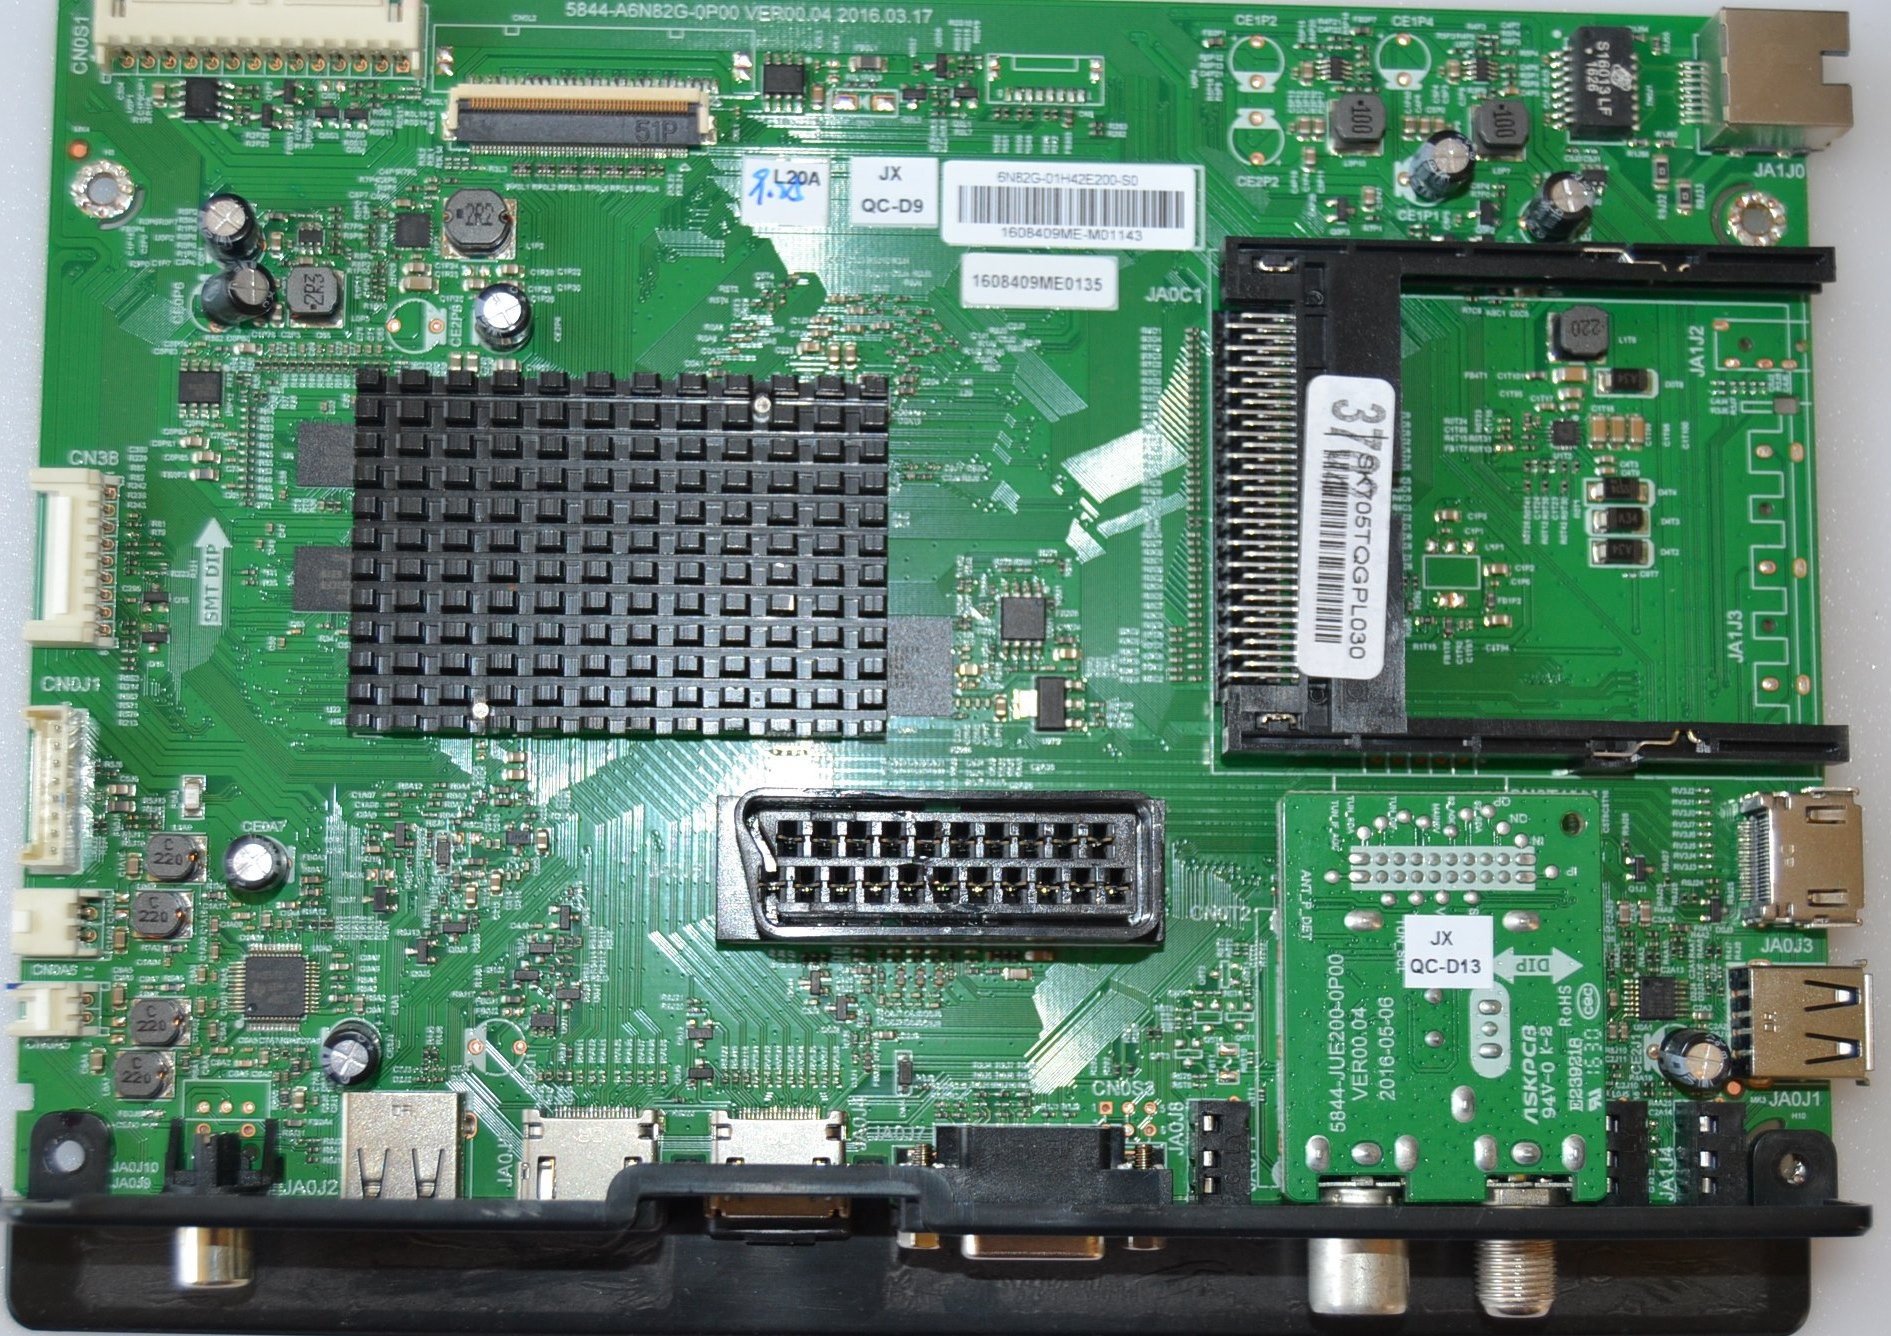 MB/42INC/SKYWORTH MAIN BOARD ,5844-A6N82G-0P00, for SKYWORTH  42E2000S